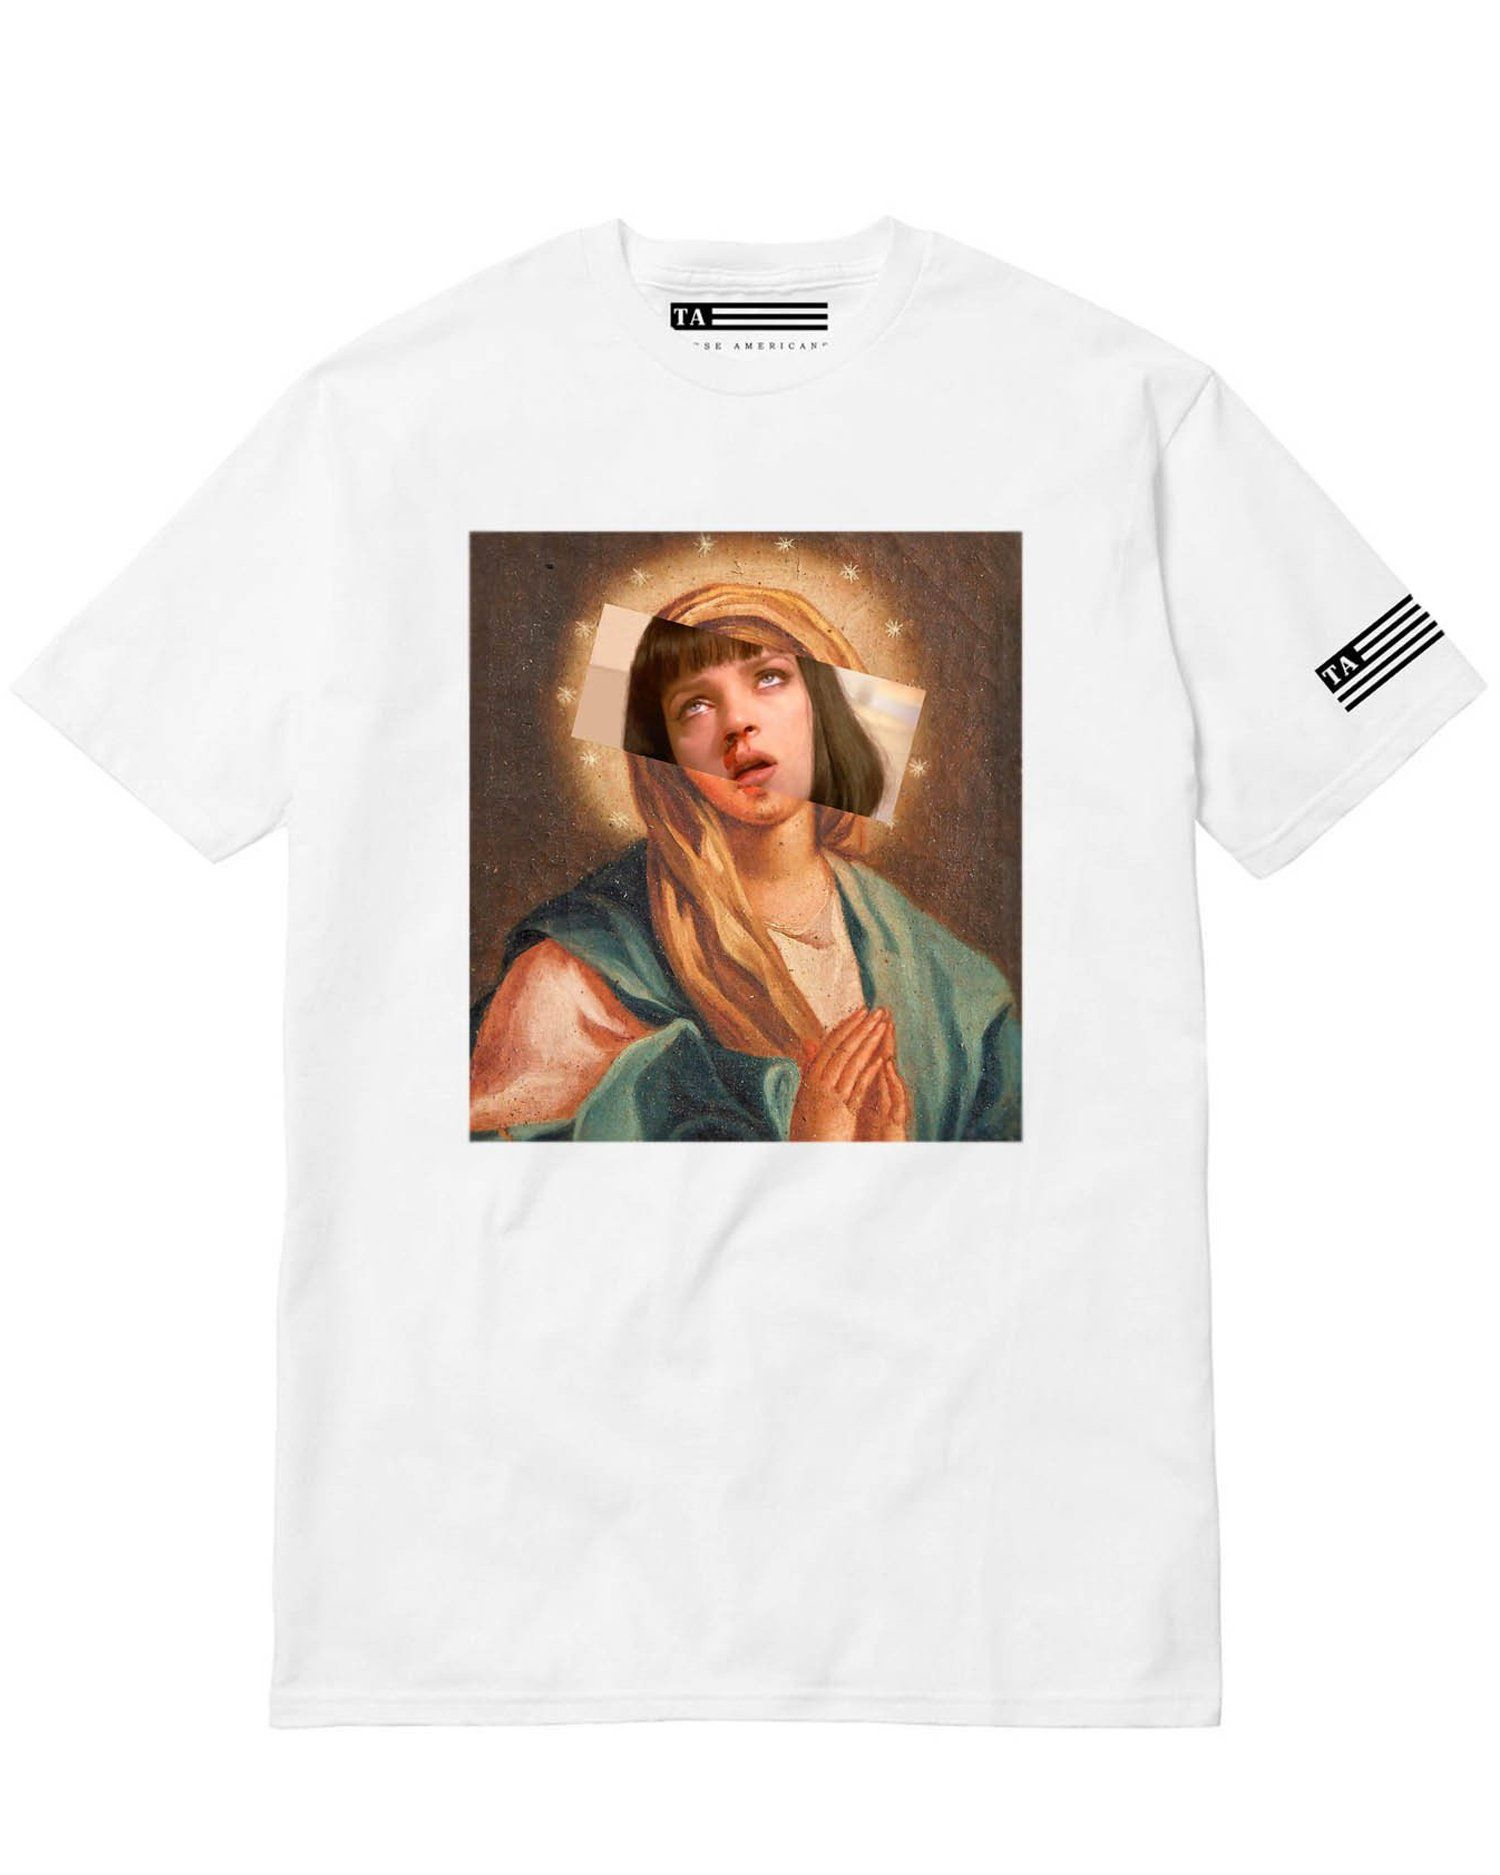 af93557c5 Ave Mia Tee | Products | Tees, Mia wallace, Mens tops